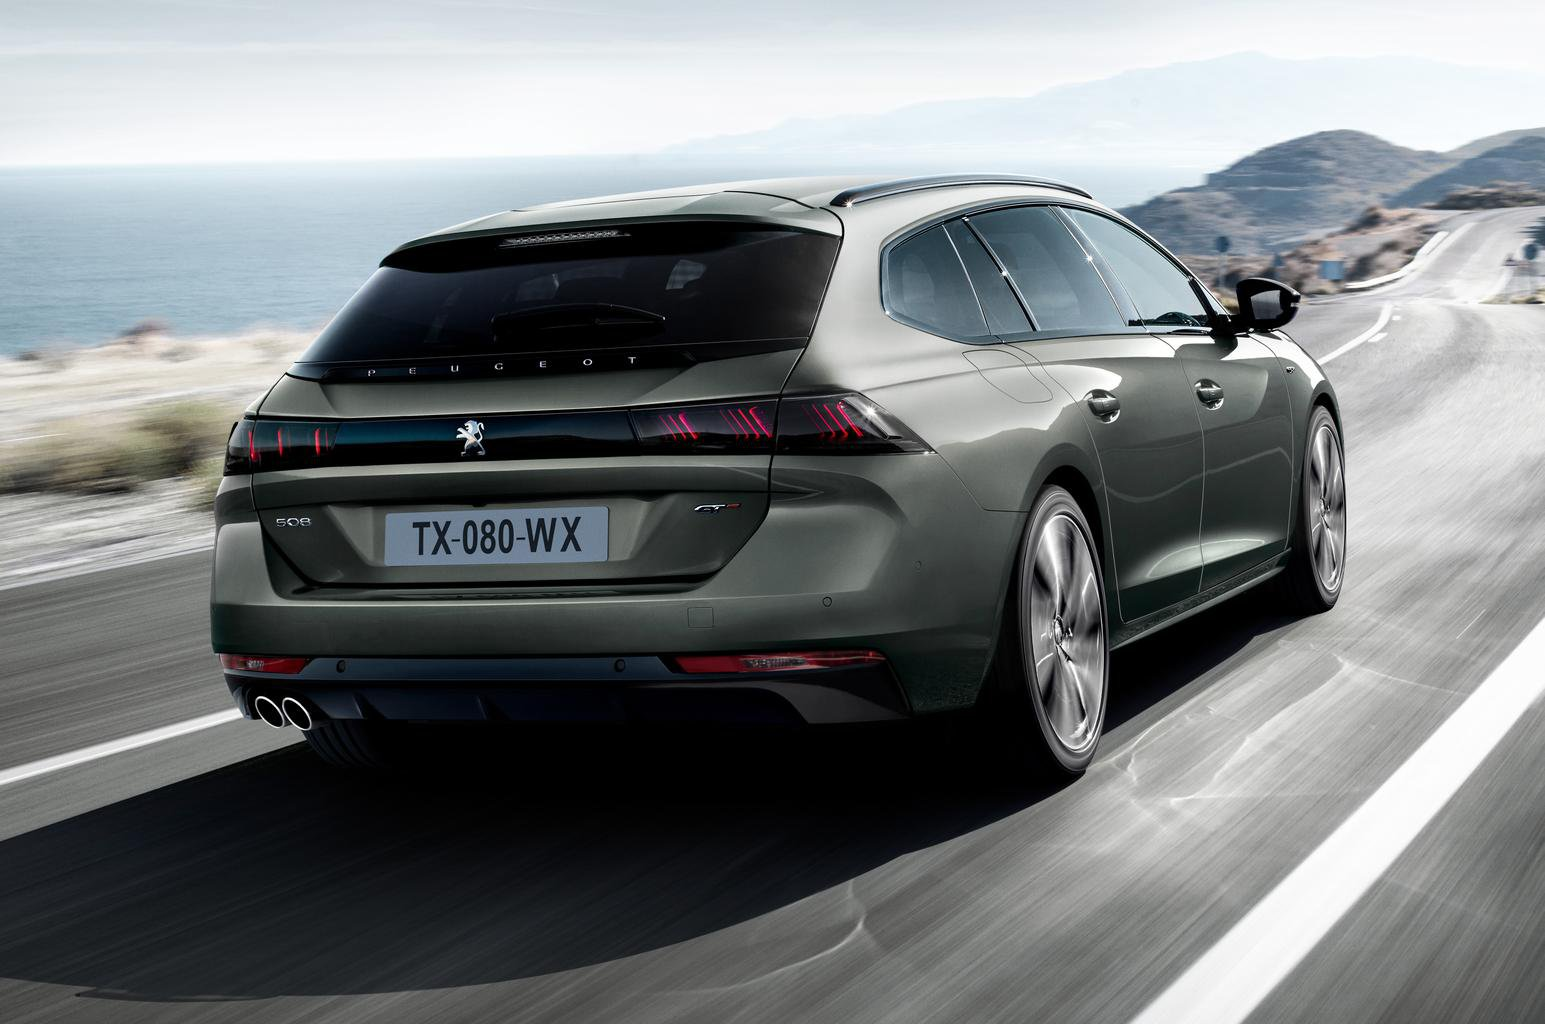 2019 Peugeot 508 SW revealed – price, specs and release date